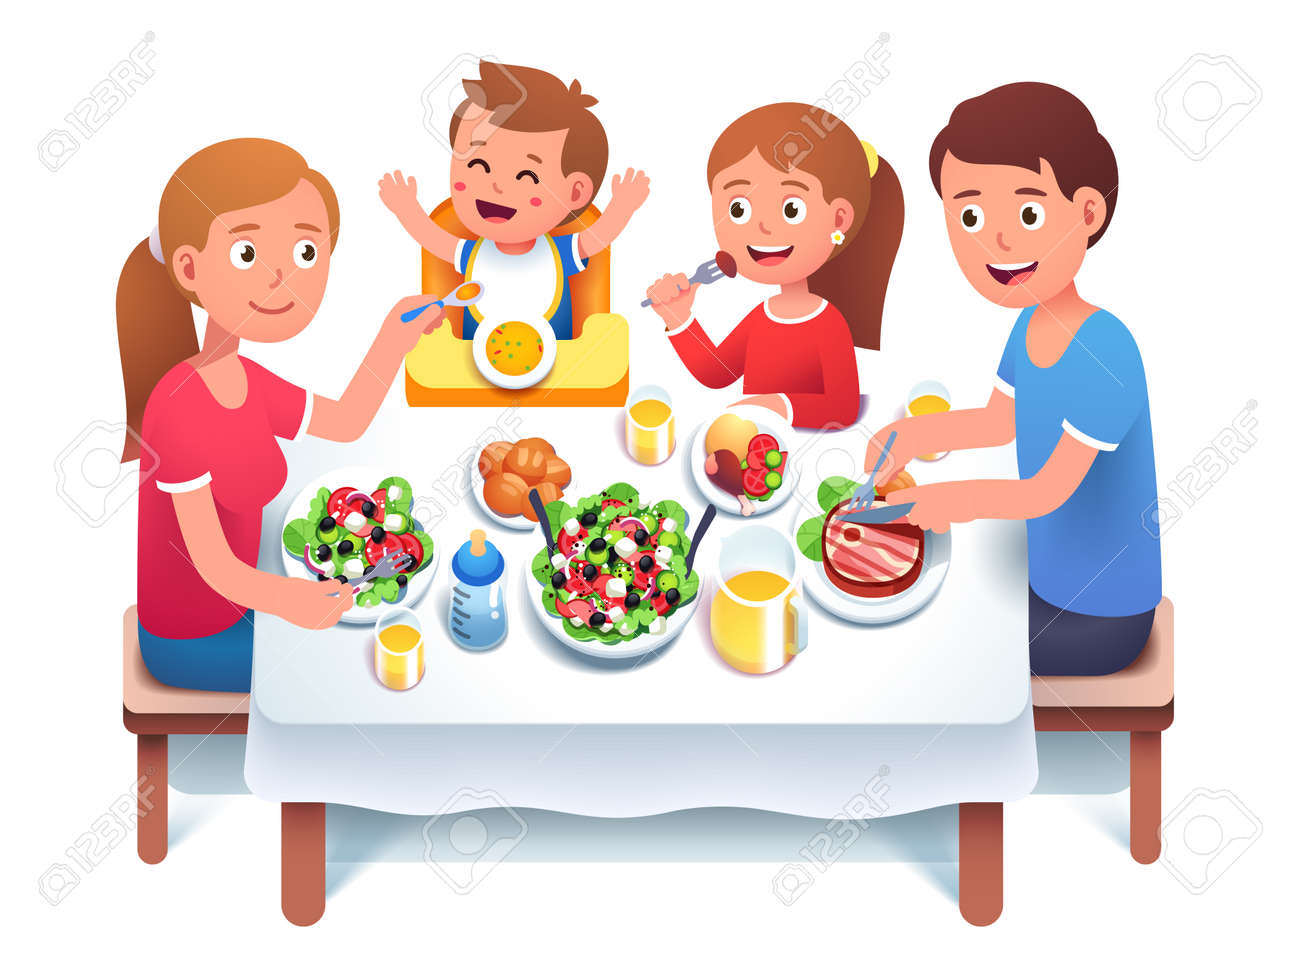 Father, mother, kids having family dinner or lunch - 153267221